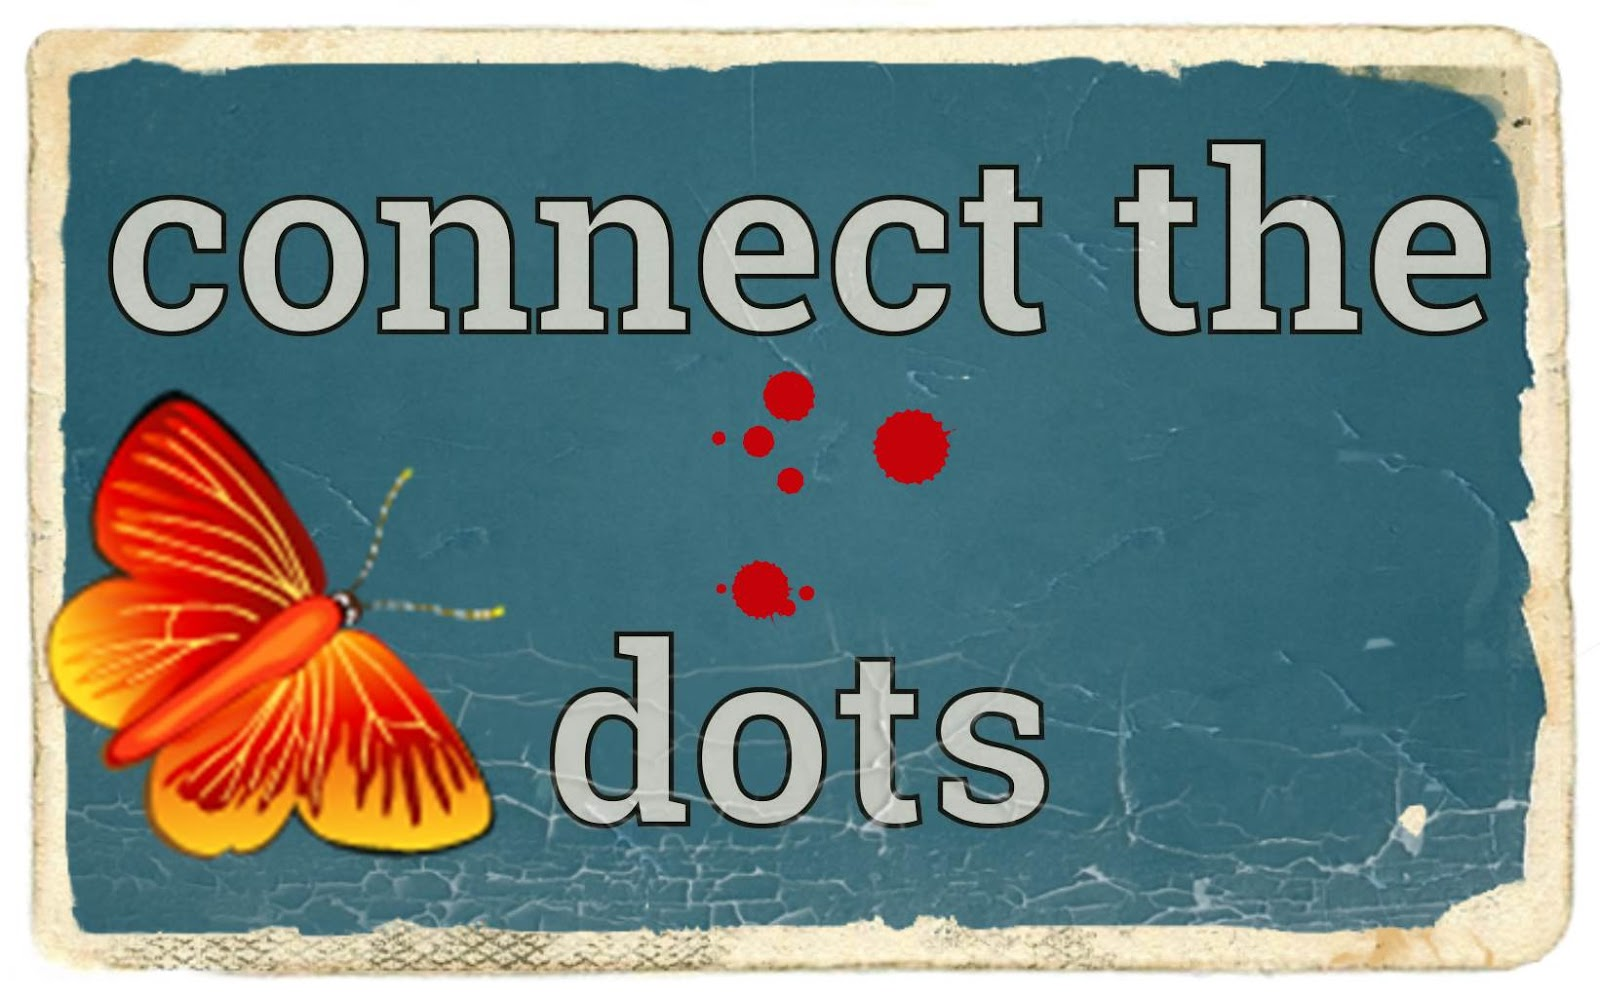 Connect The Dots Meaning